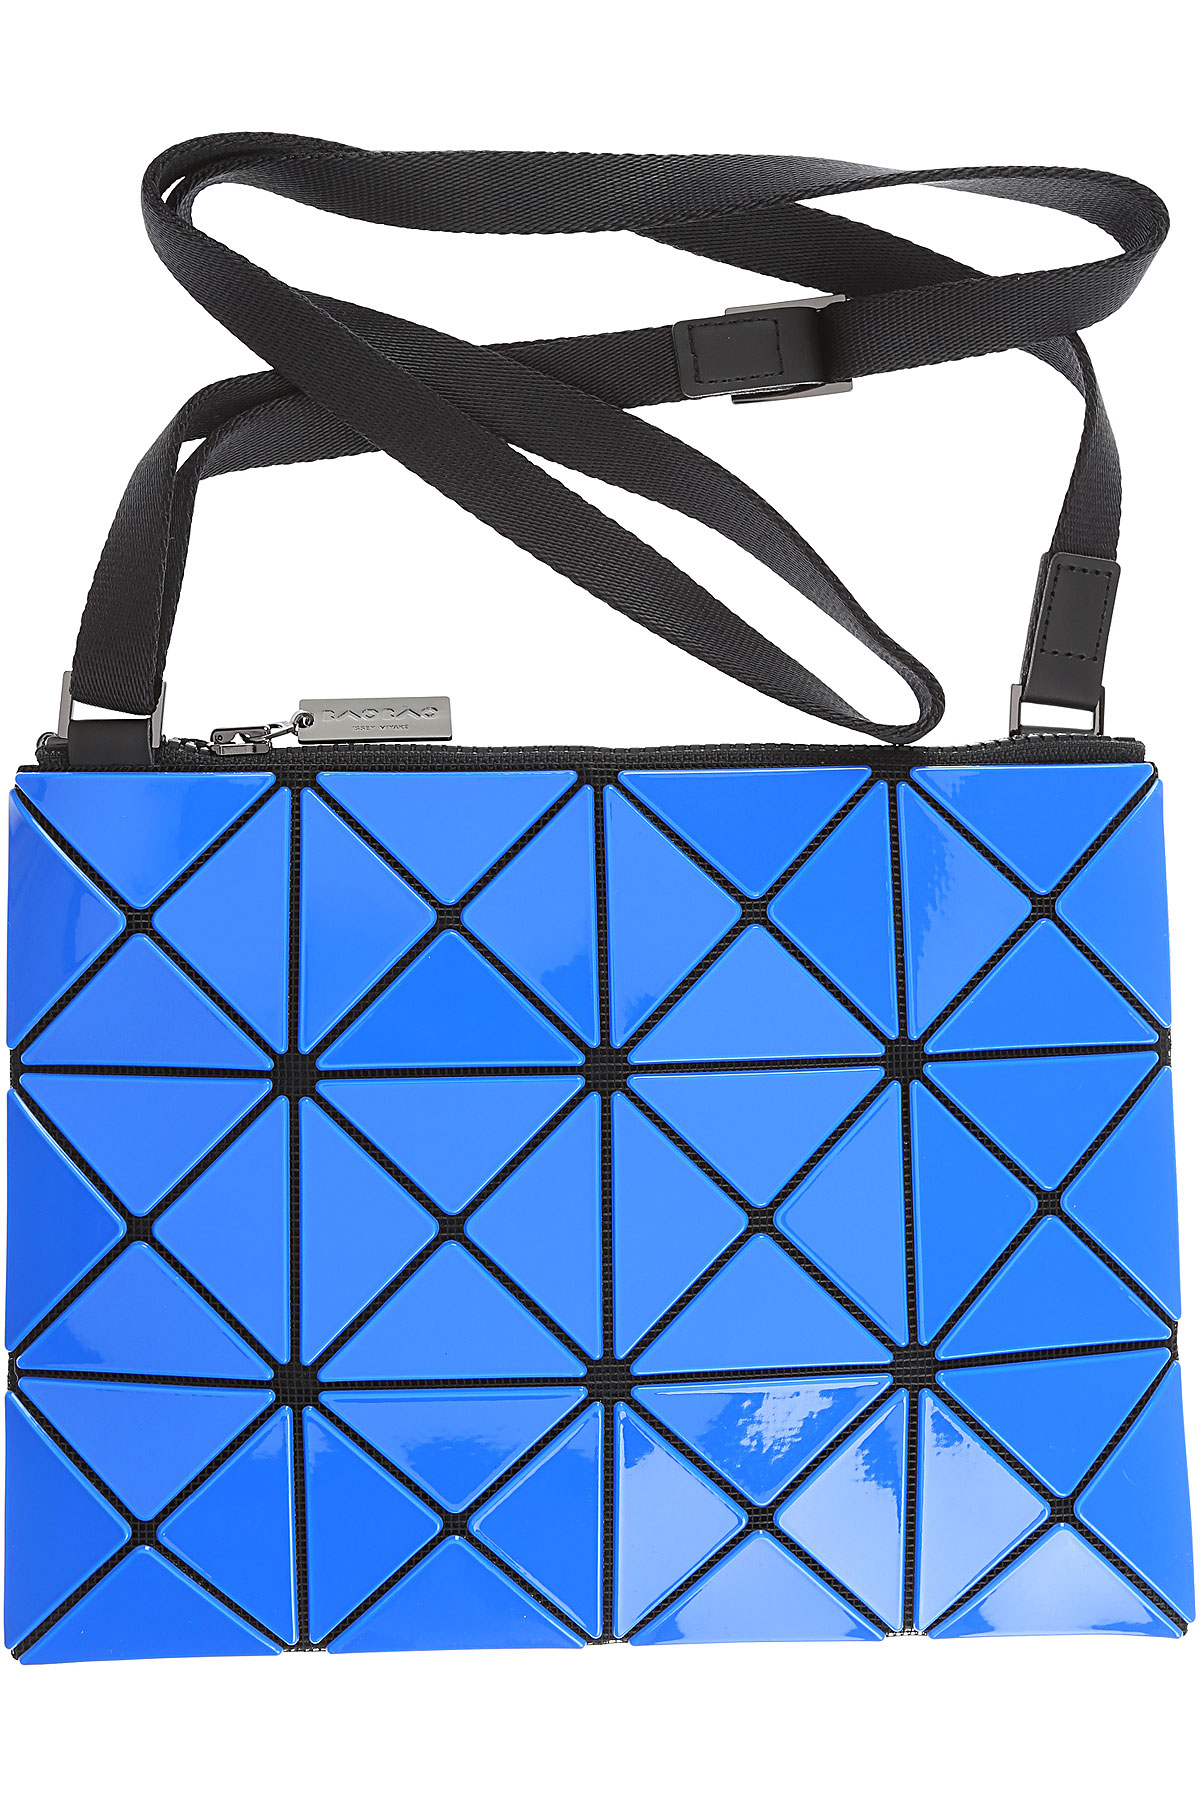 Image of Issey Miyake Shoulder Bag for Women, Bao Bao, Blue, polyester, 2017